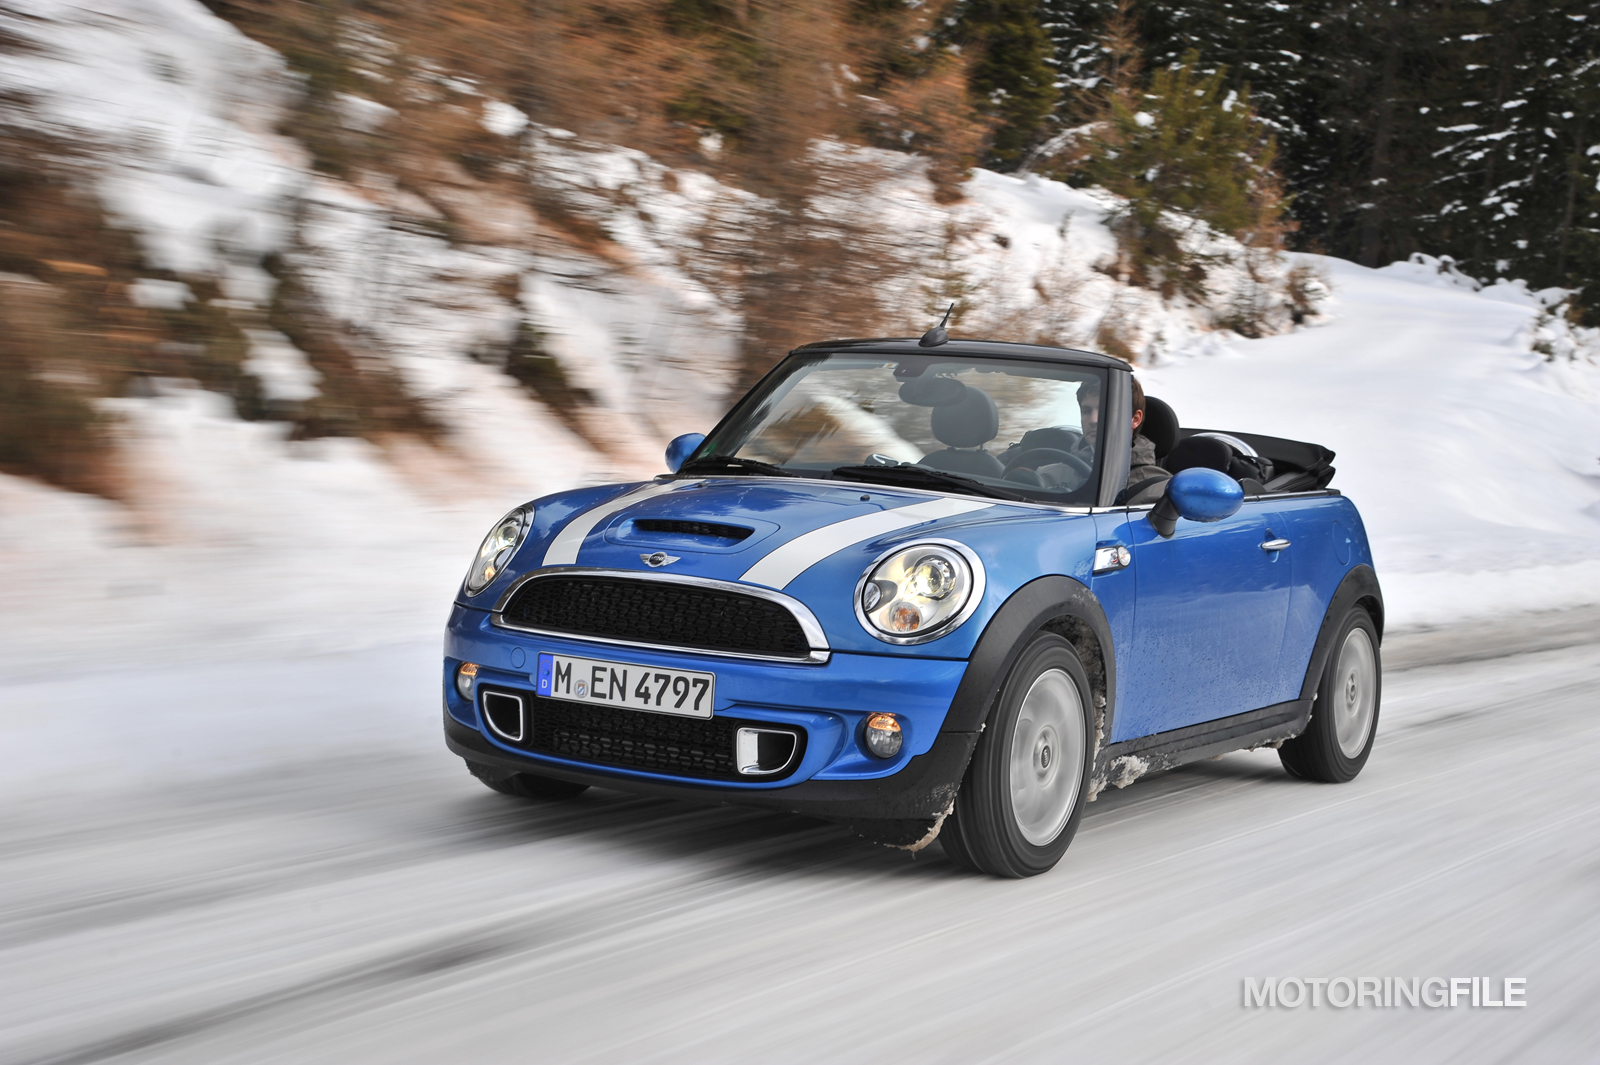 MINIUSA Is Extending the Warranty on Certain Cooper S Models